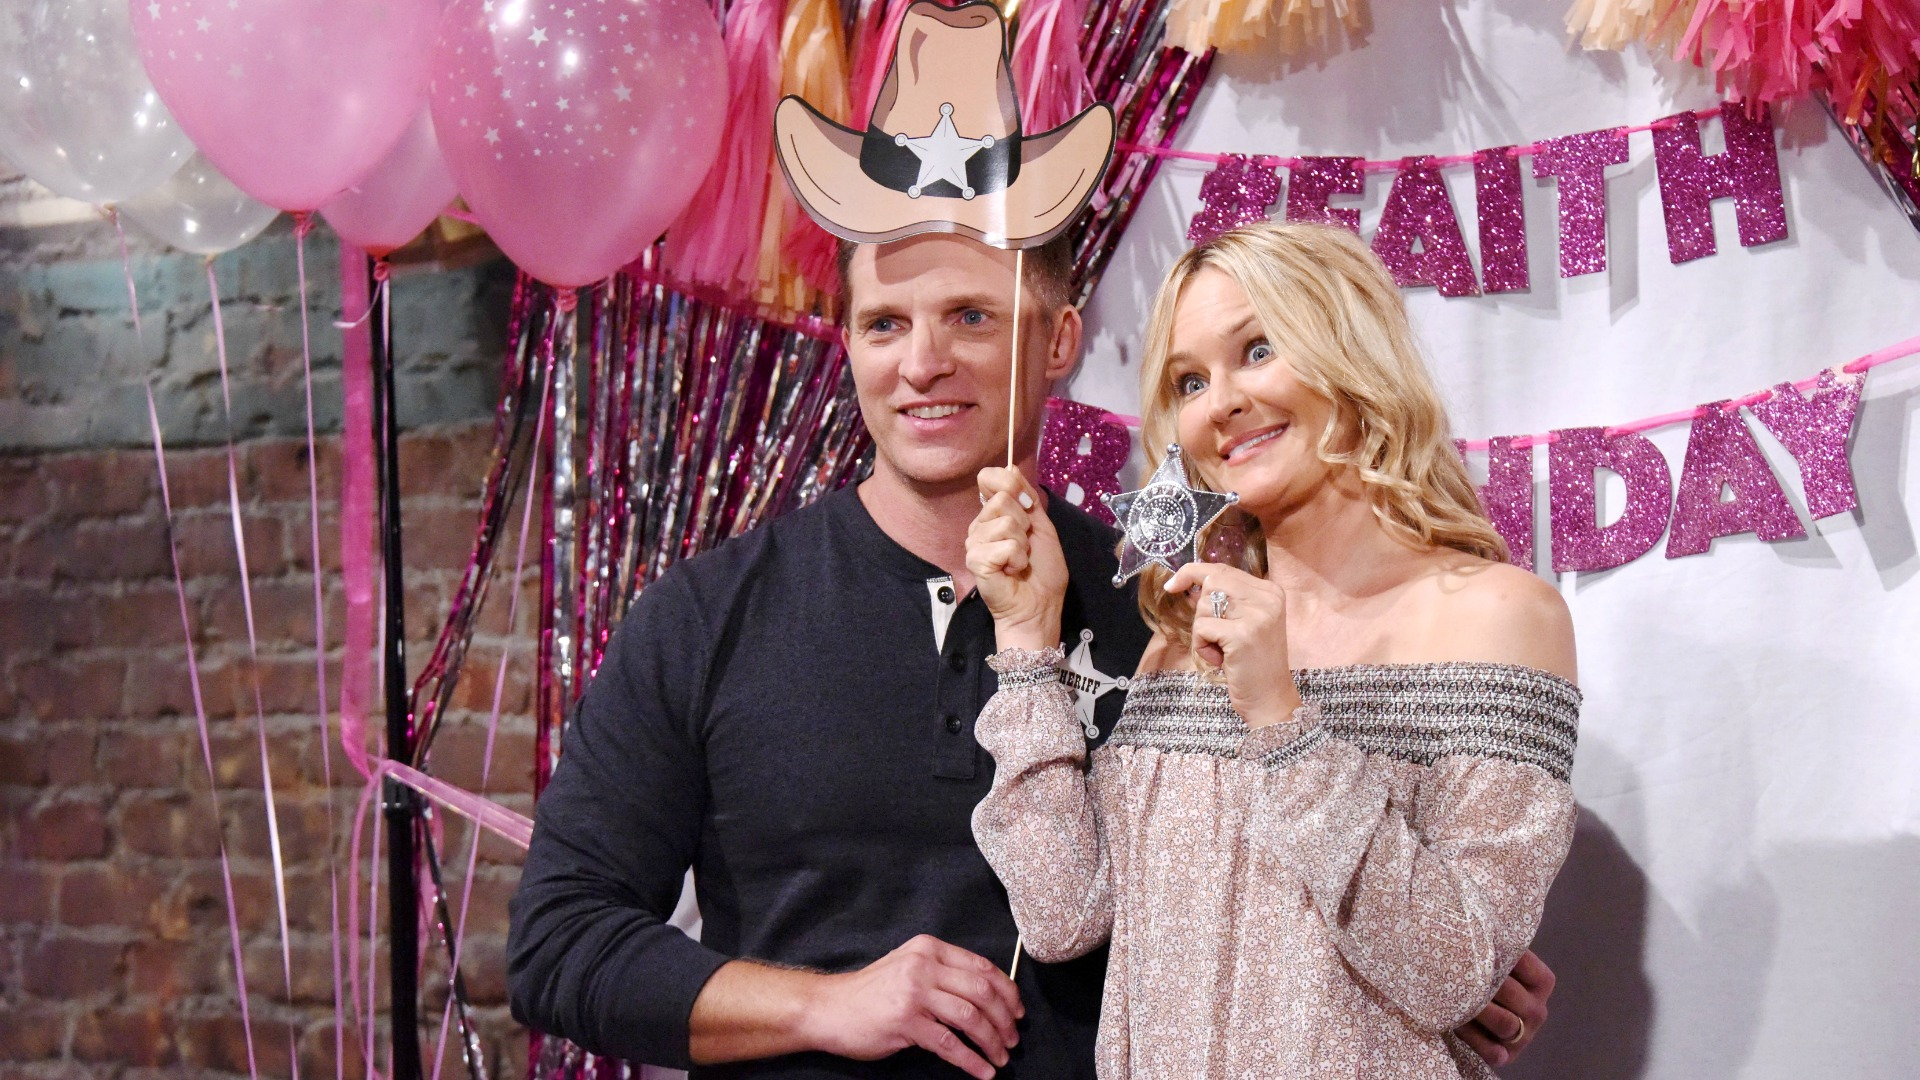 Dylan (Steve Burton) and Sharon (Sharon Case) kept law and order at the party.